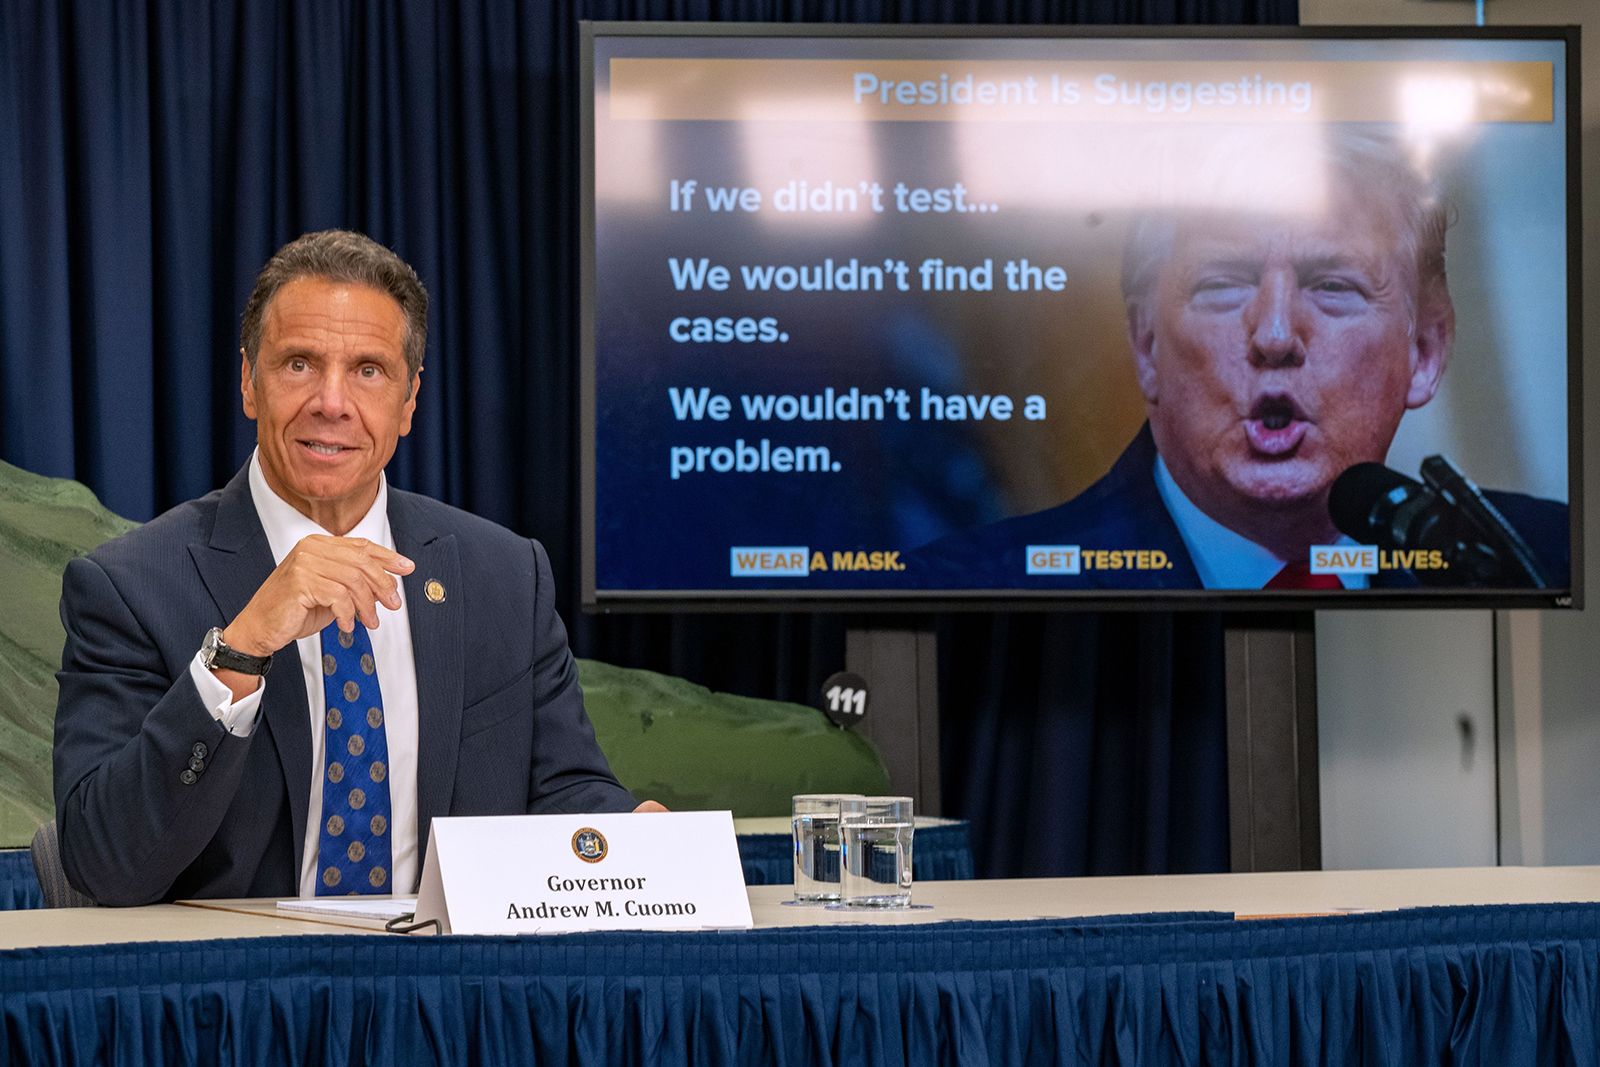 Cuomo outlines plan to reopen schools in New York